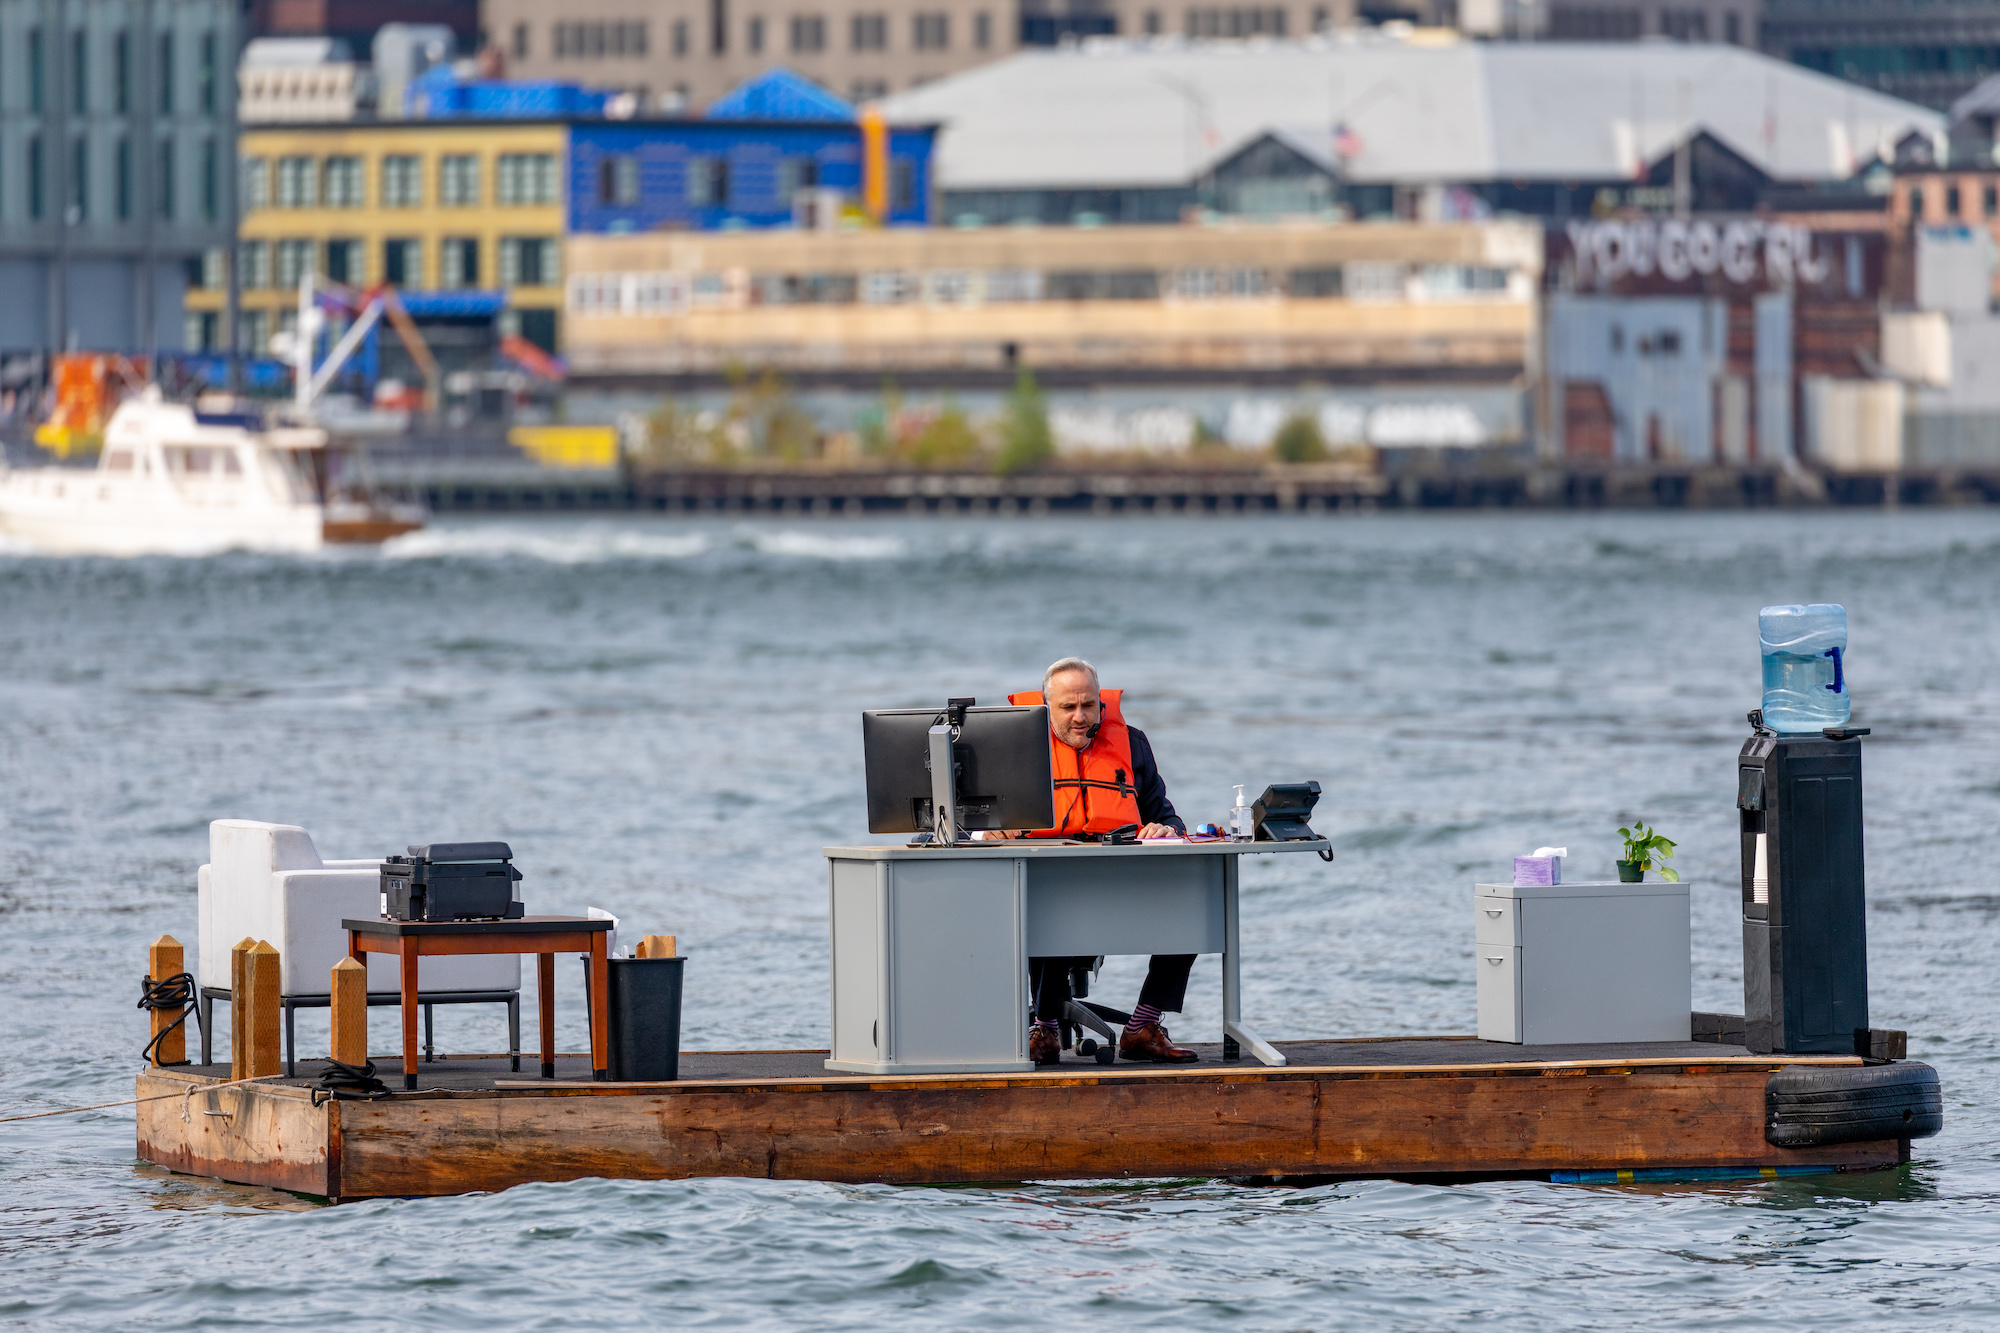 New York City's most socially distant office? It's sitting in the middle of the East River